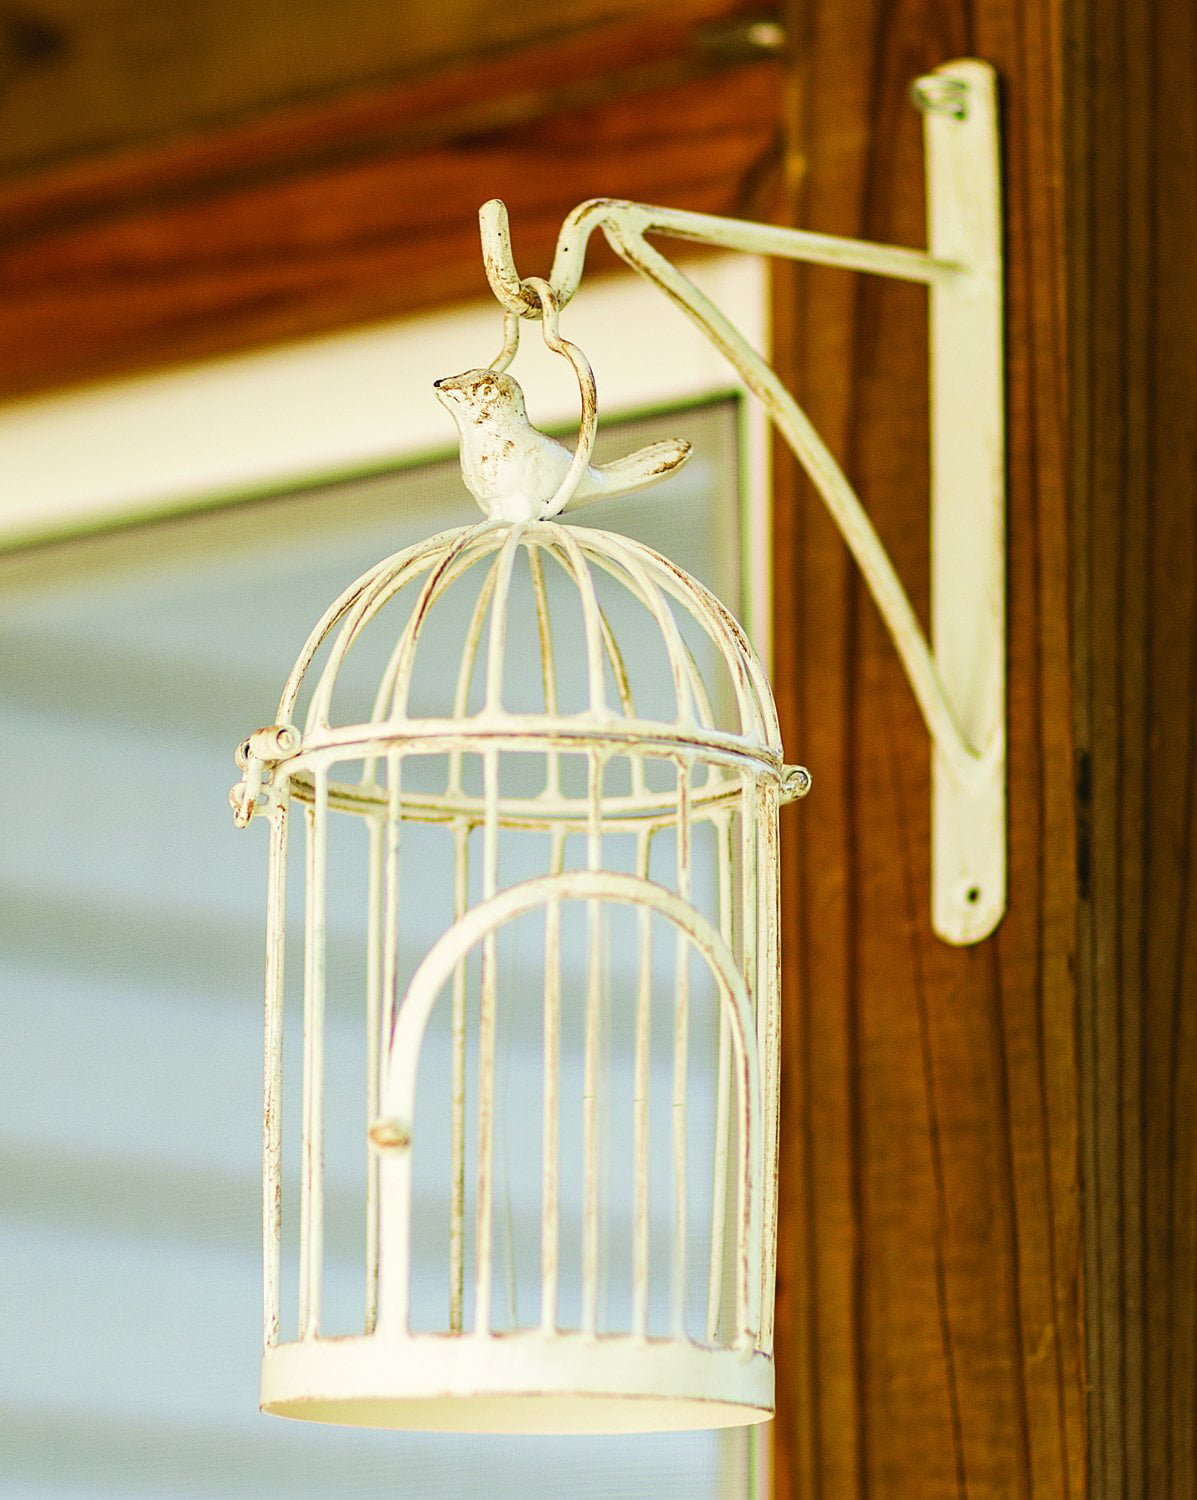 Wall Hanging Bird Cage Antique Whit Walmart Com Walmart Com